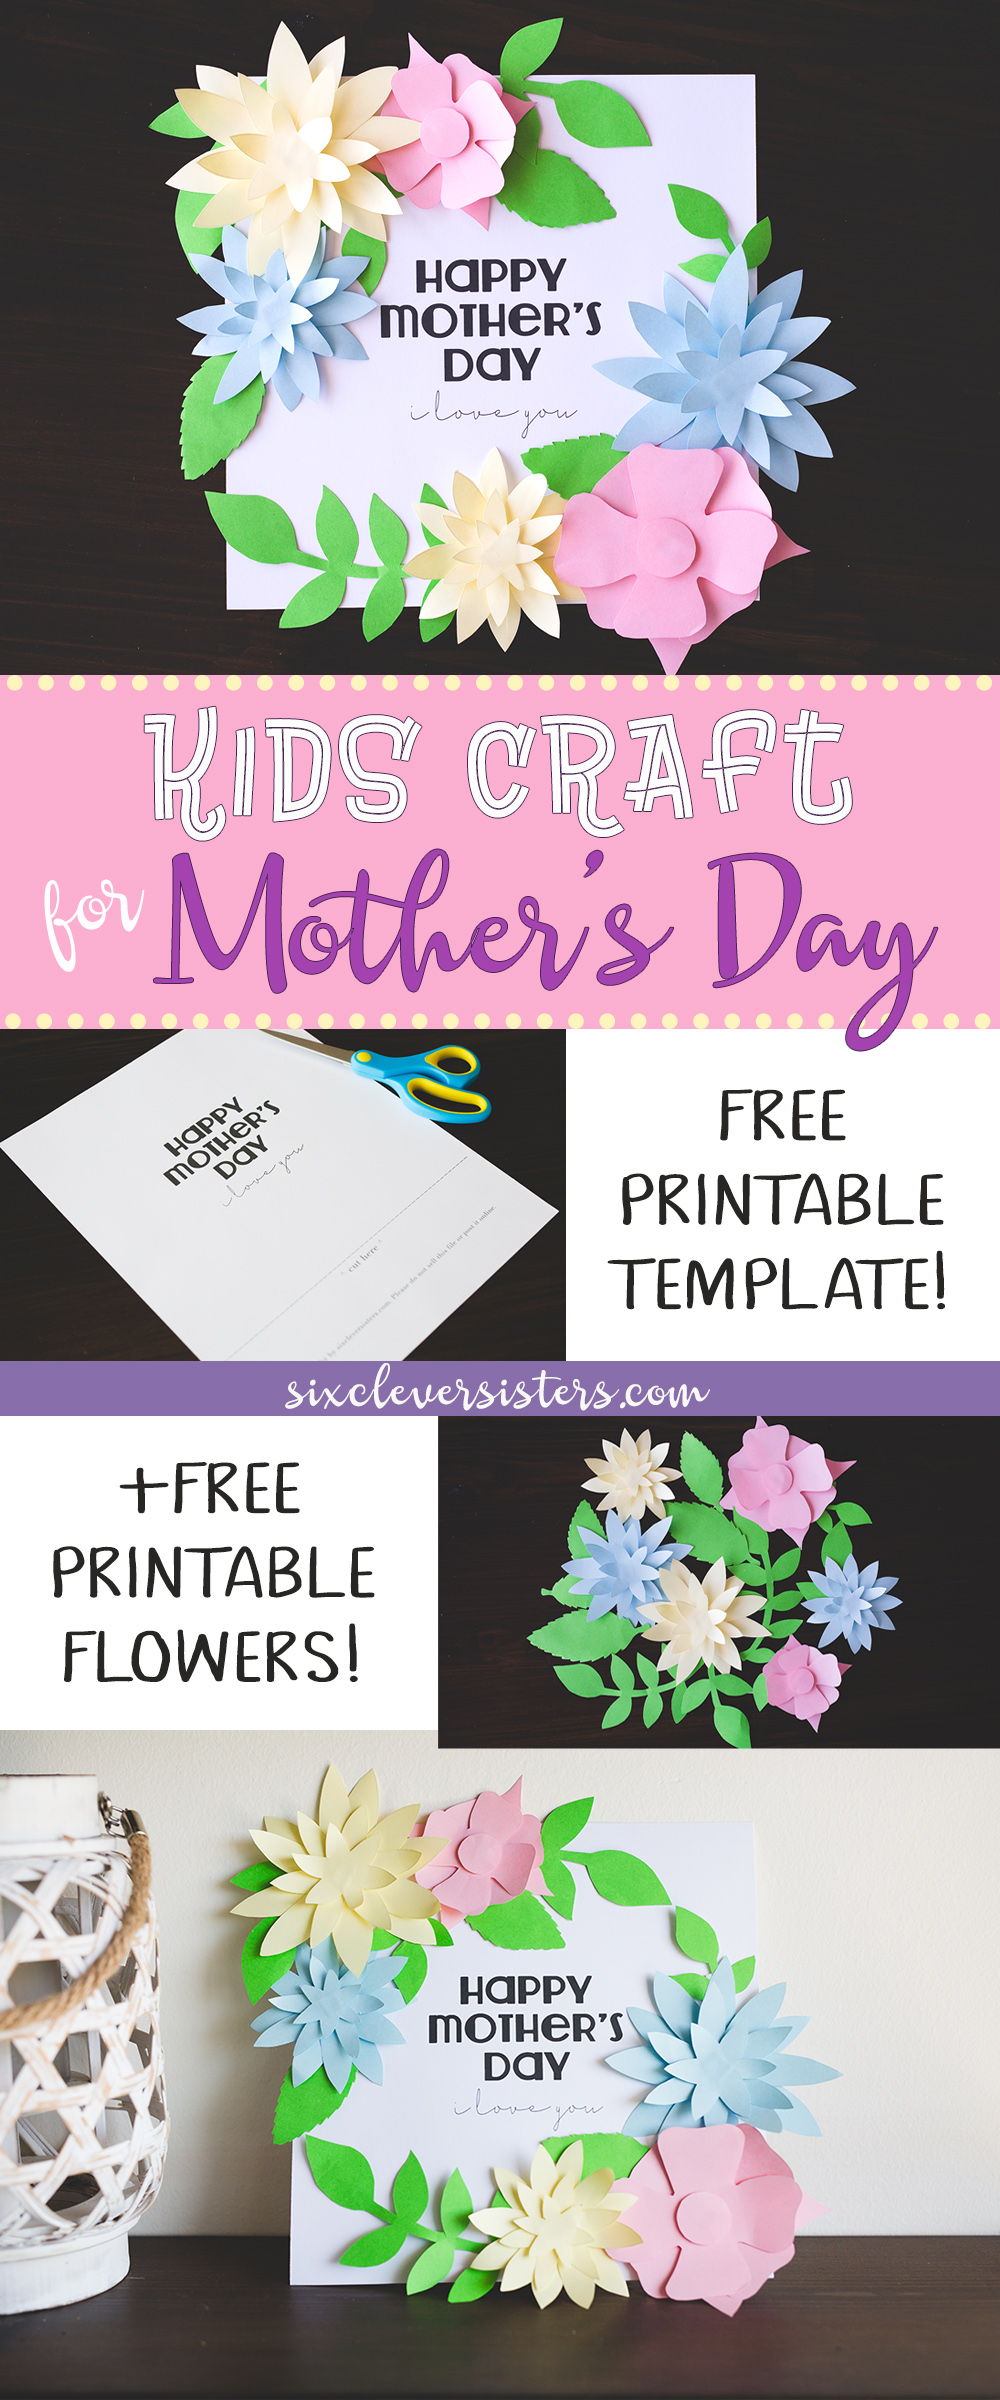 mothers day kids craft mothers day crafts for kids mothers day craft ideas - Kids Craft Templates